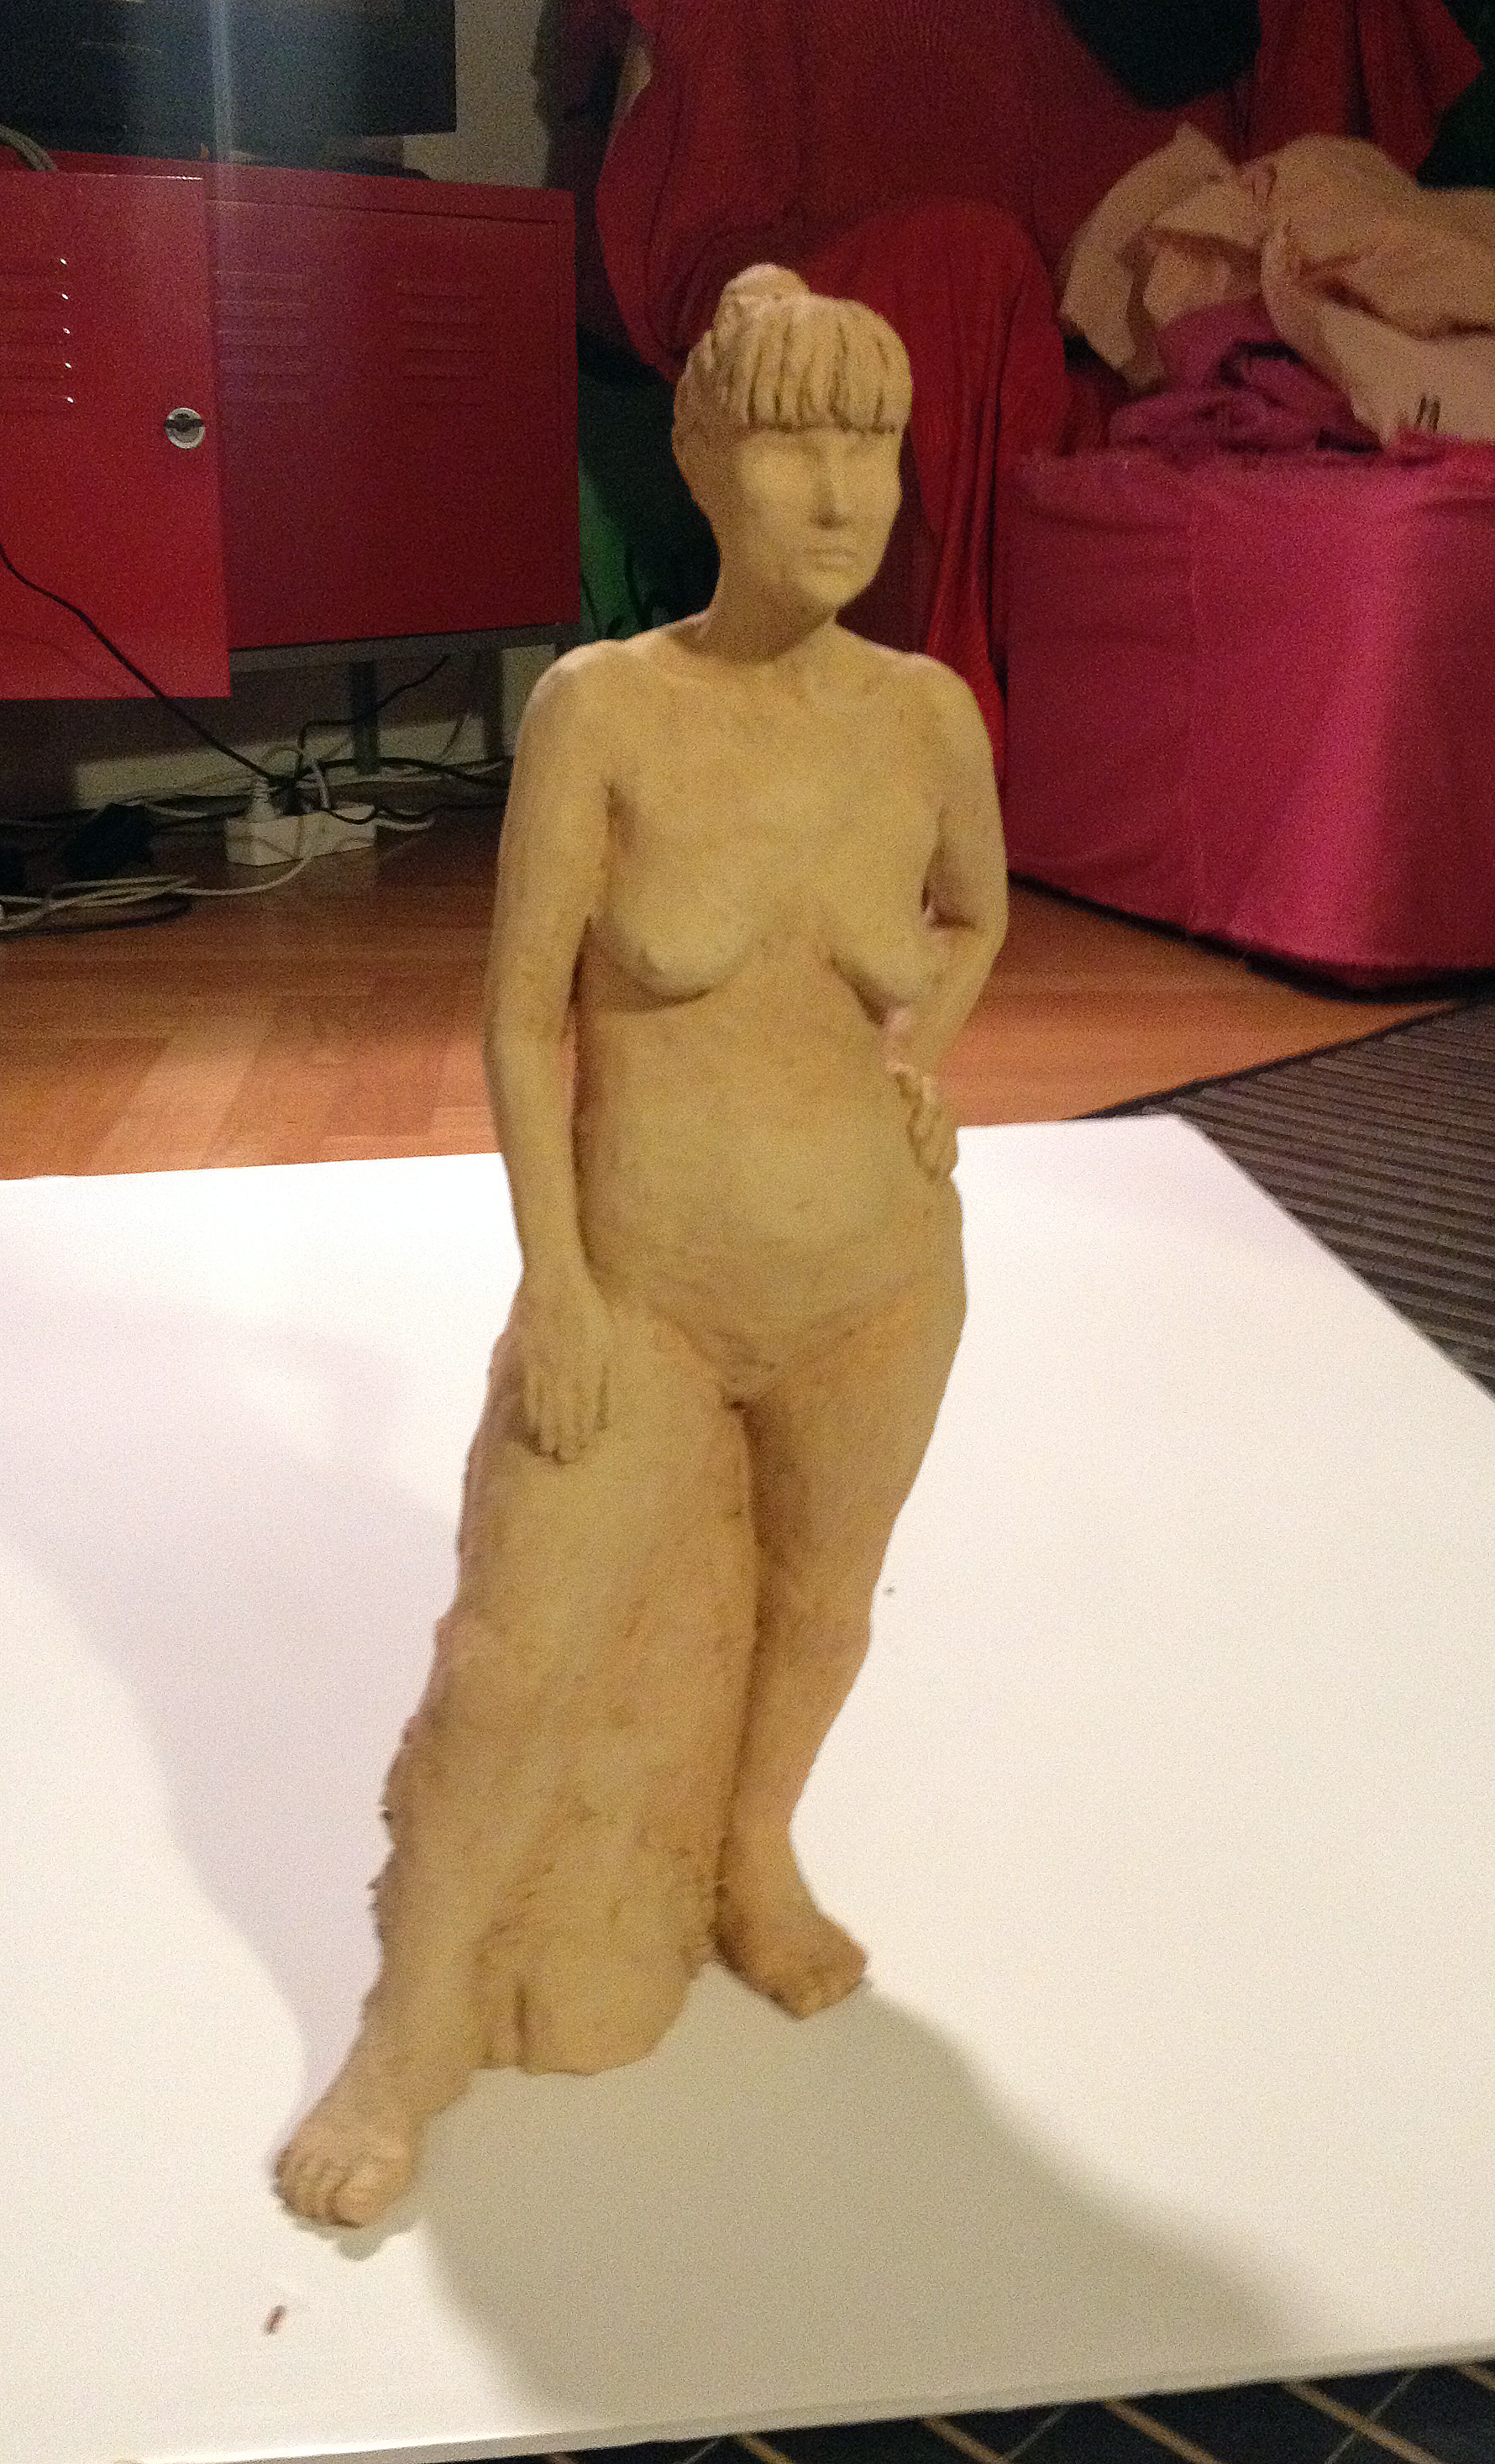 Her(e). Sculpture. Clay, 30 cm. By Anna-Lena Ekenryd 2013.